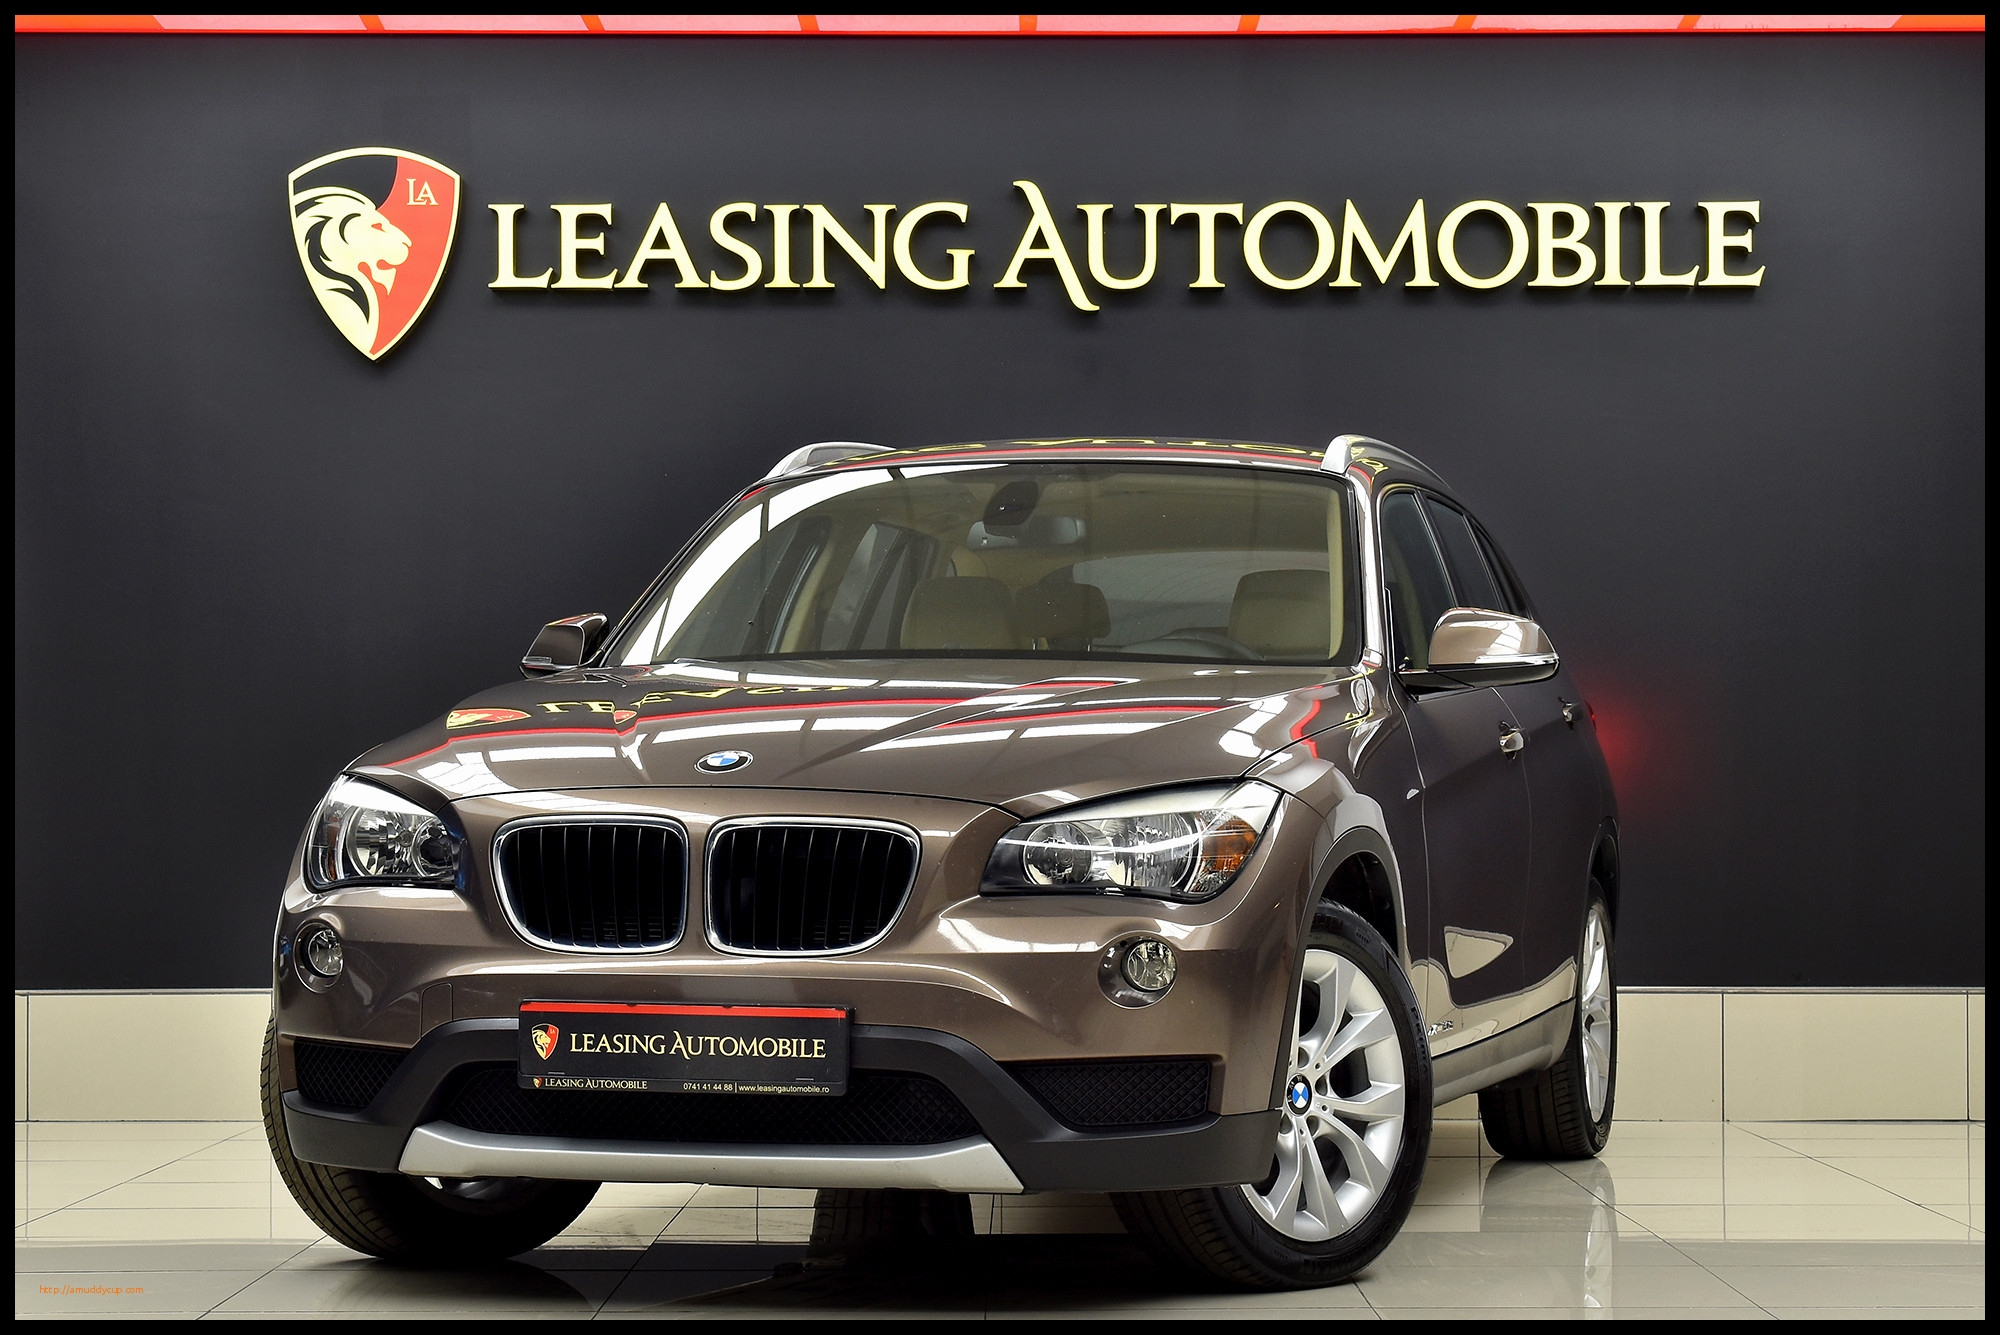 2018 Bmw M5 Lease Unique 2018 Bmw I3 Lease Edmunds Lovely Lease Bmw X1 Beautiful Auto